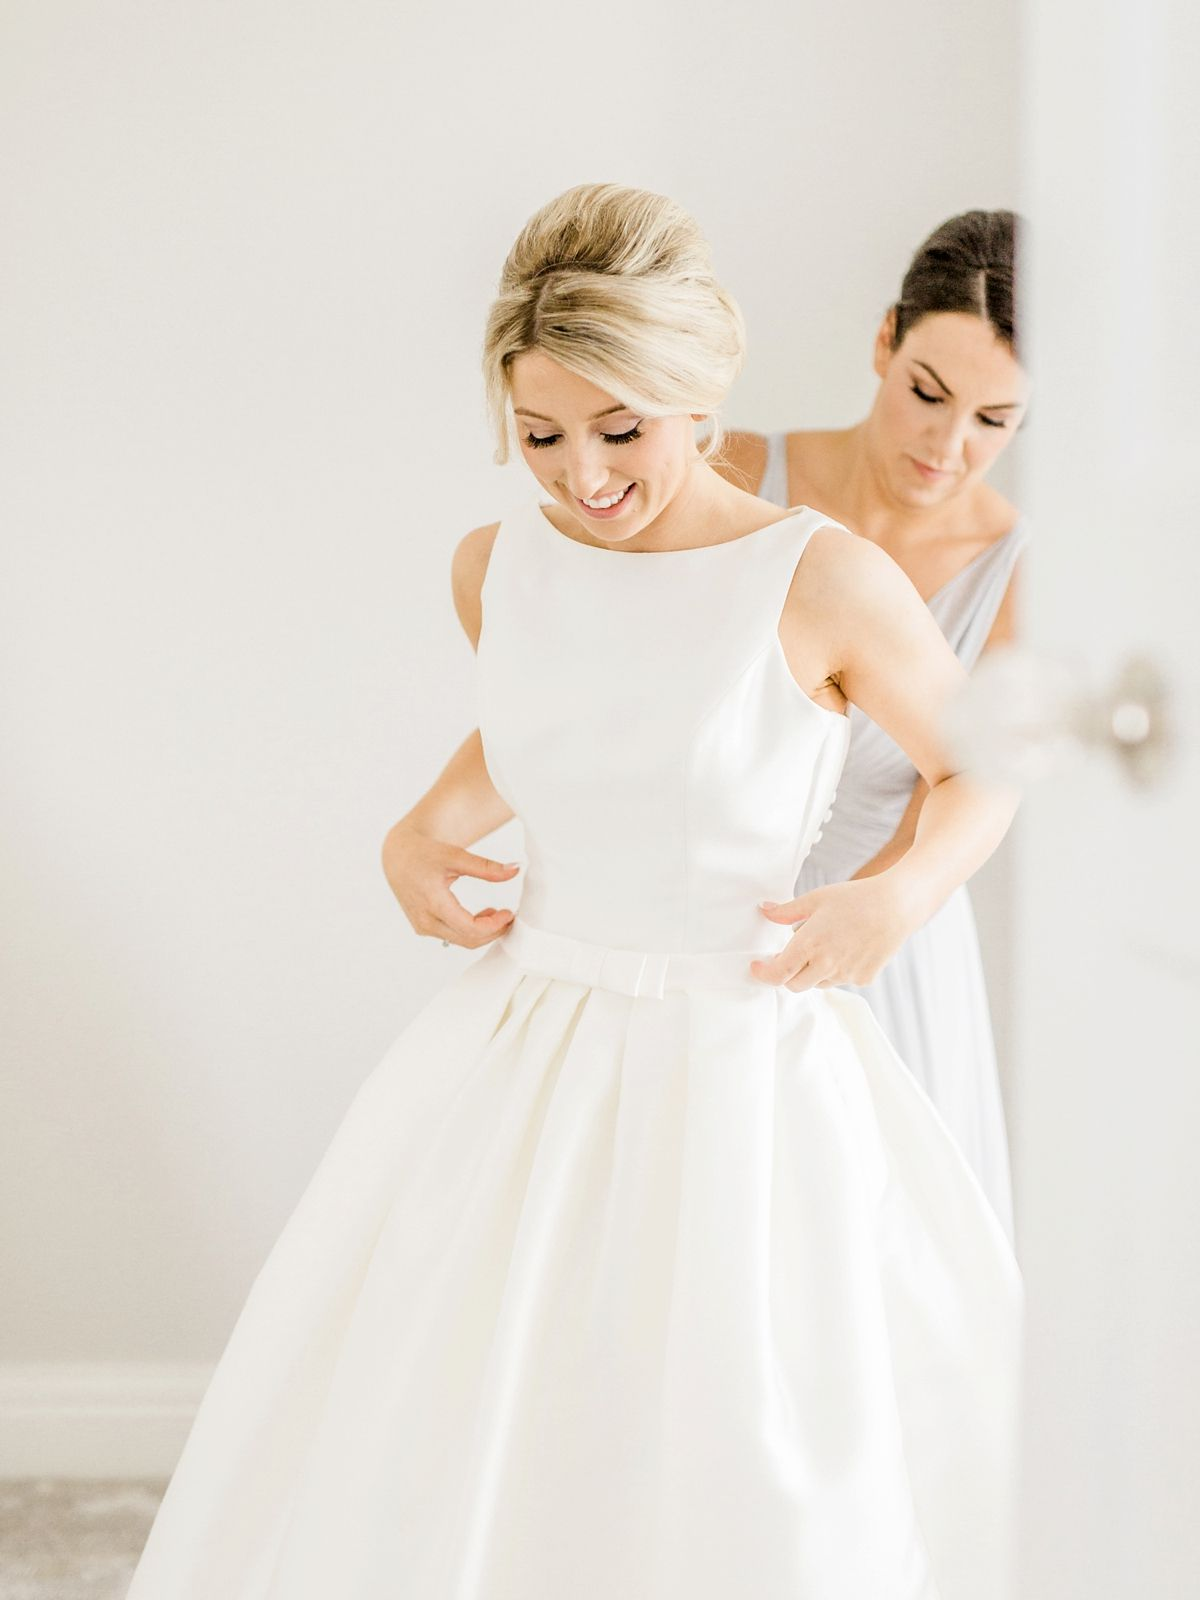 Audrey Hepburn Inspired Pronovias Elegance for a Classy and Modern ...